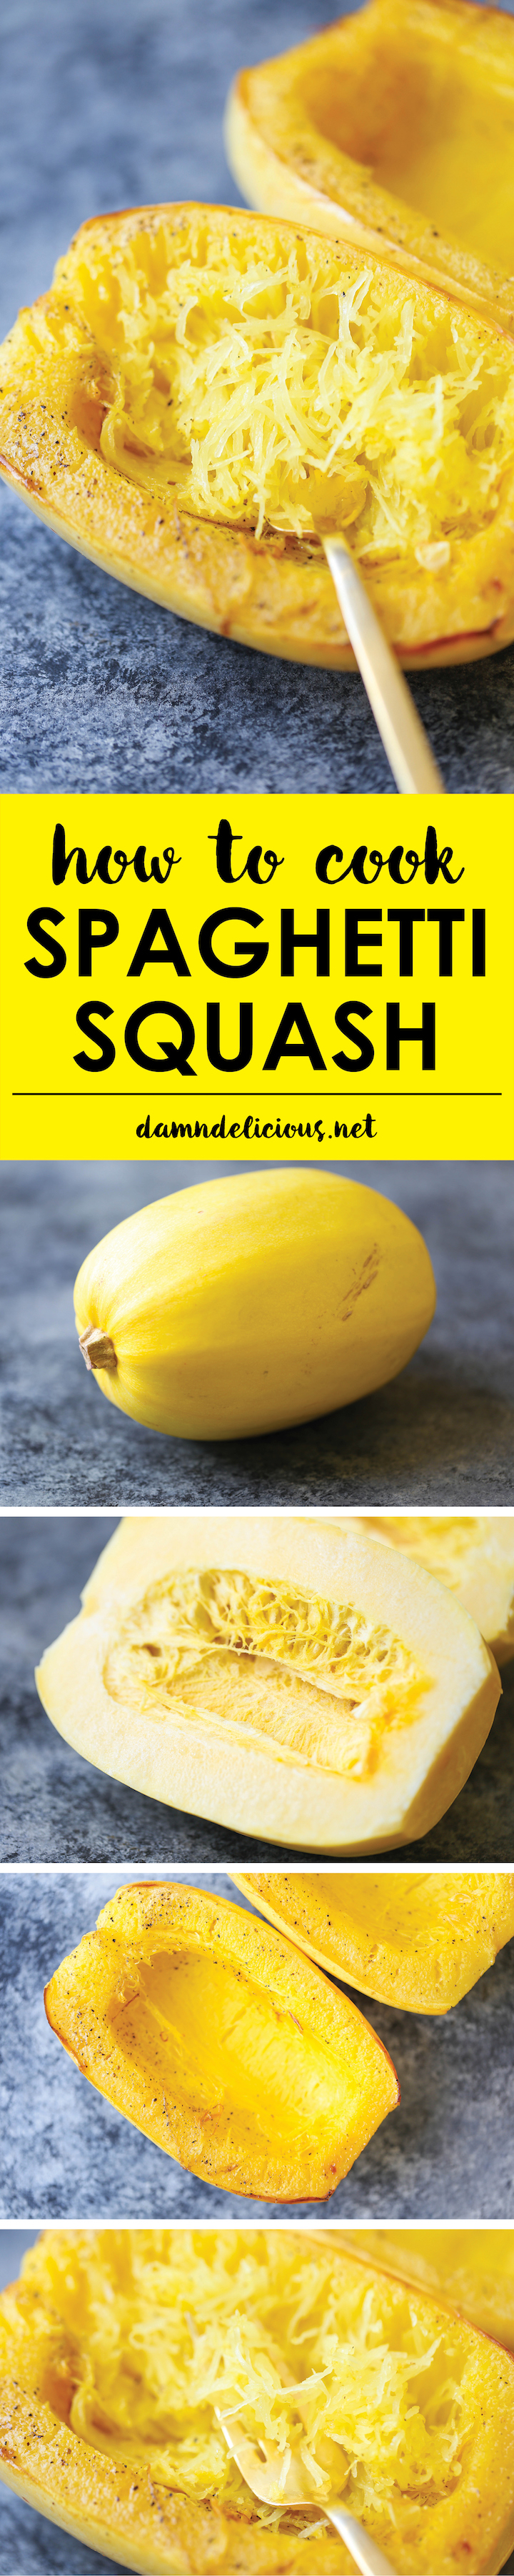 How to Cook Spaghetti Squash - The simplest and EASIEST way to cook spaghetti squash. And it's low in fat and rich in protein! Only 31 calories/serving!